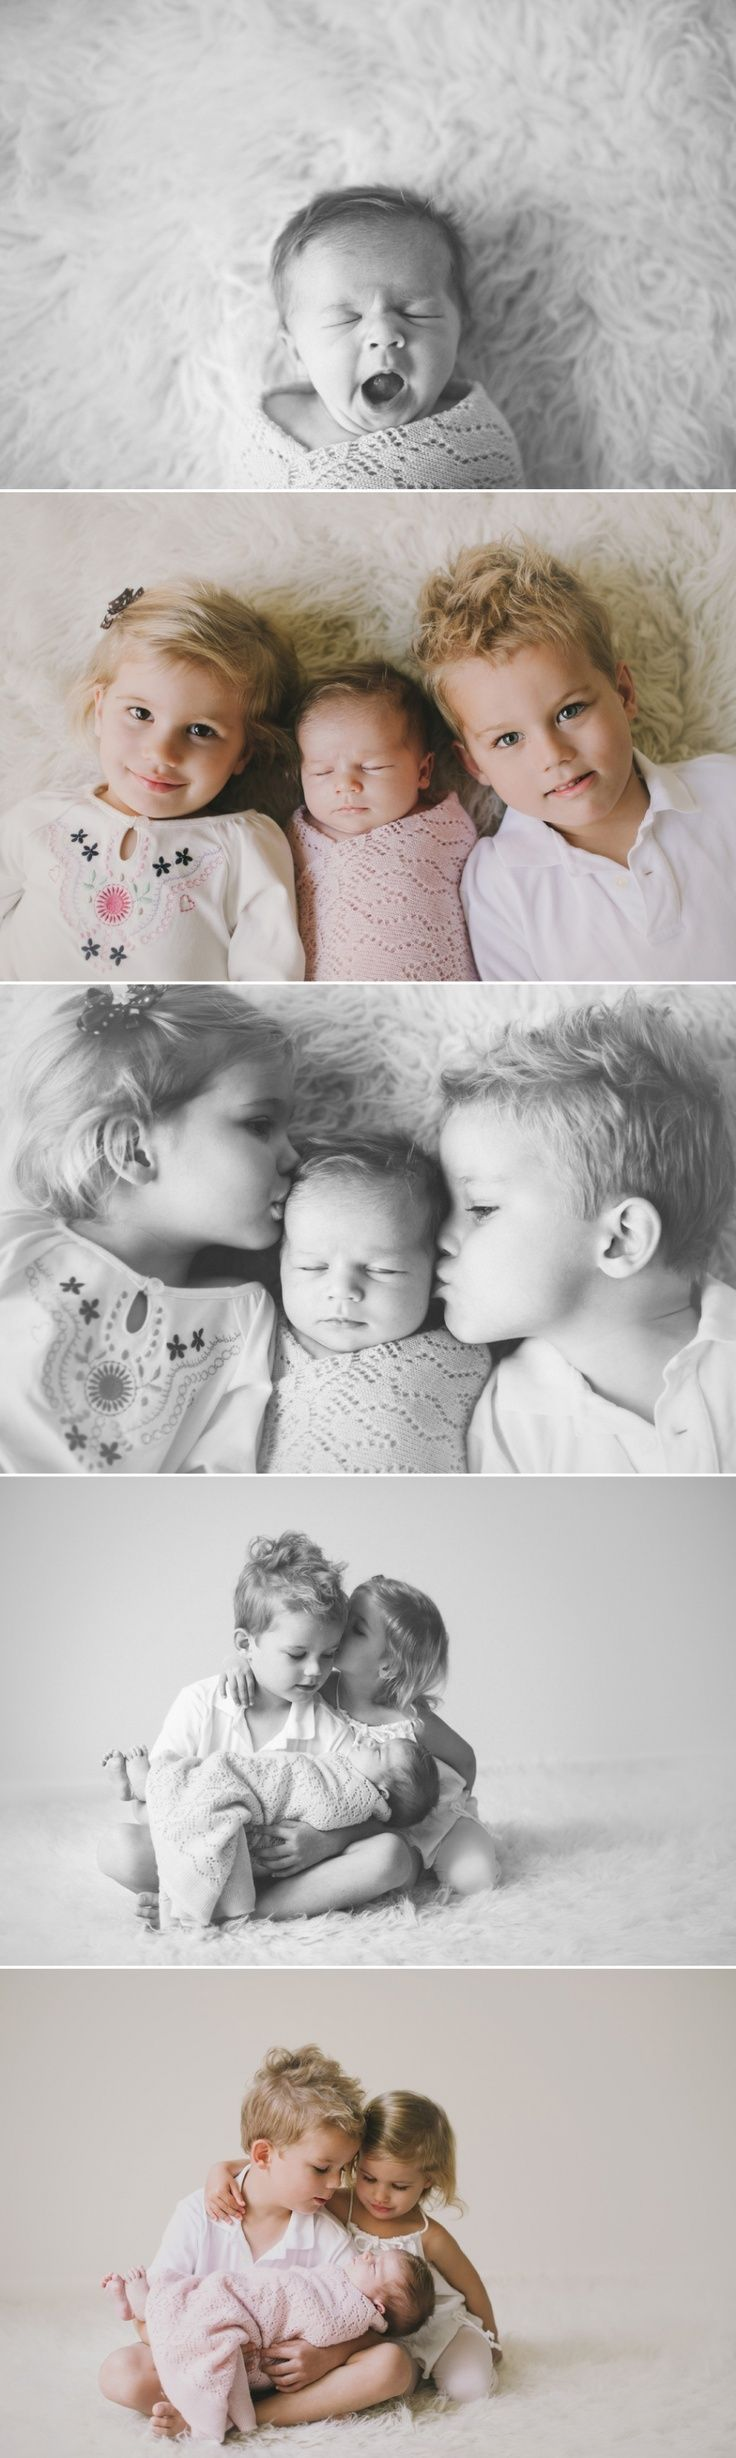 newborn with siblings